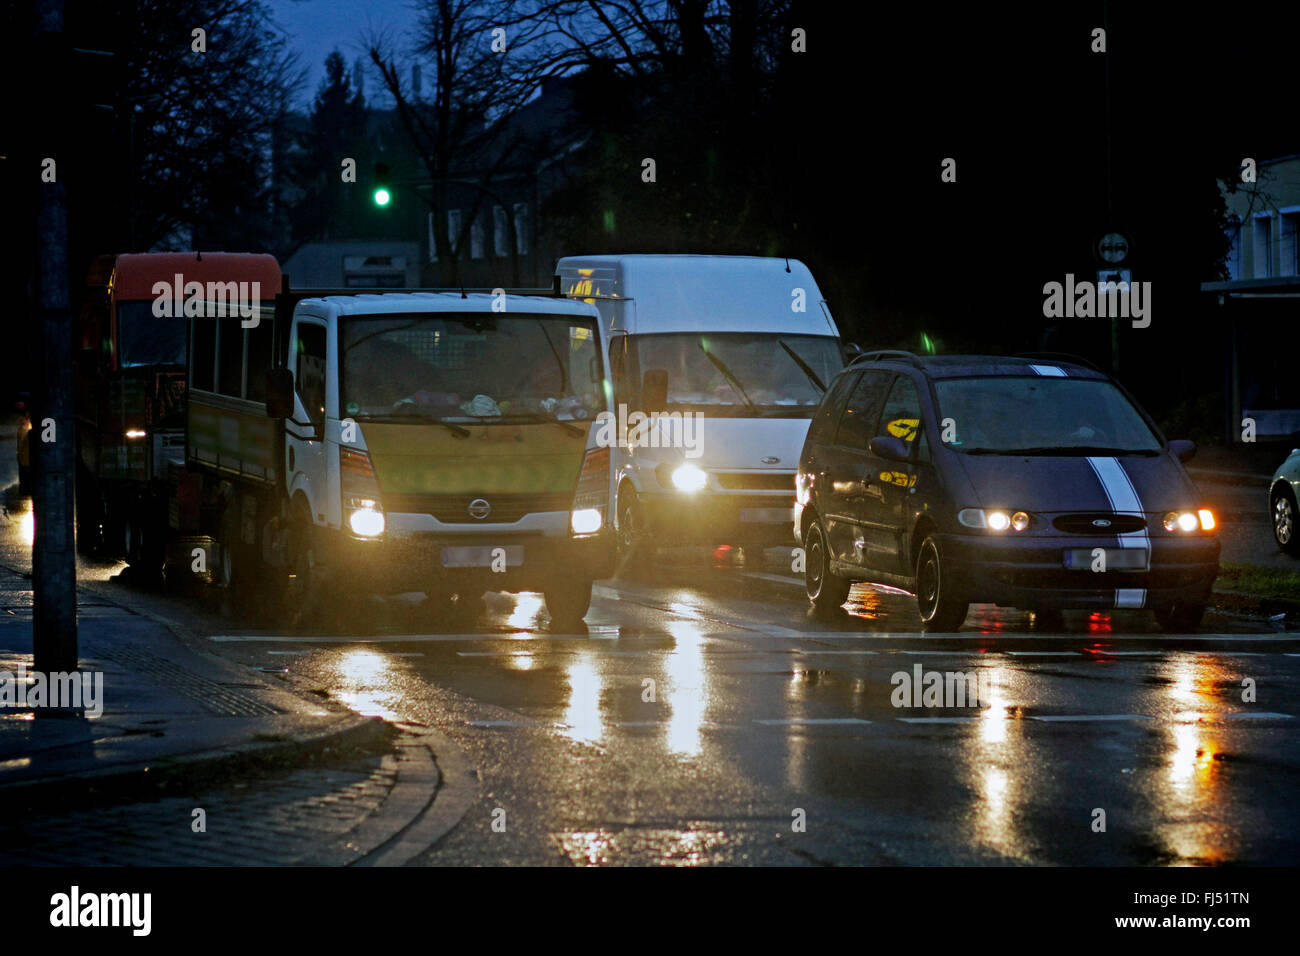 traffic in bad weather in the evening, Germany - Stock Image